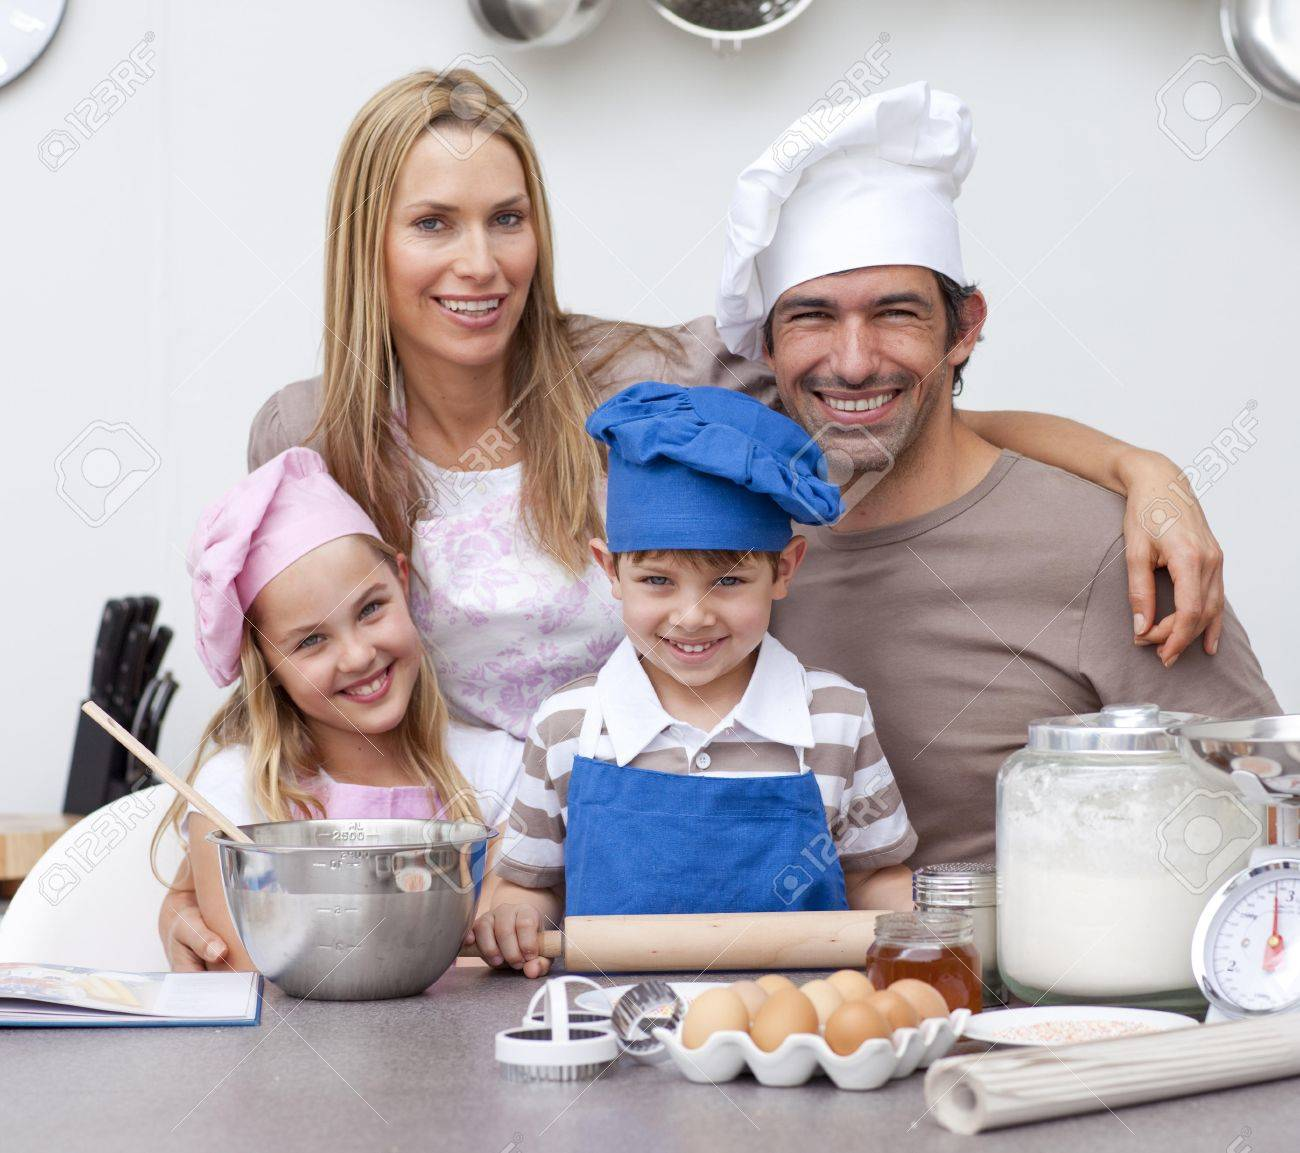 Smiling parents helping children baking in the kitchen Stock Photo - 10110864